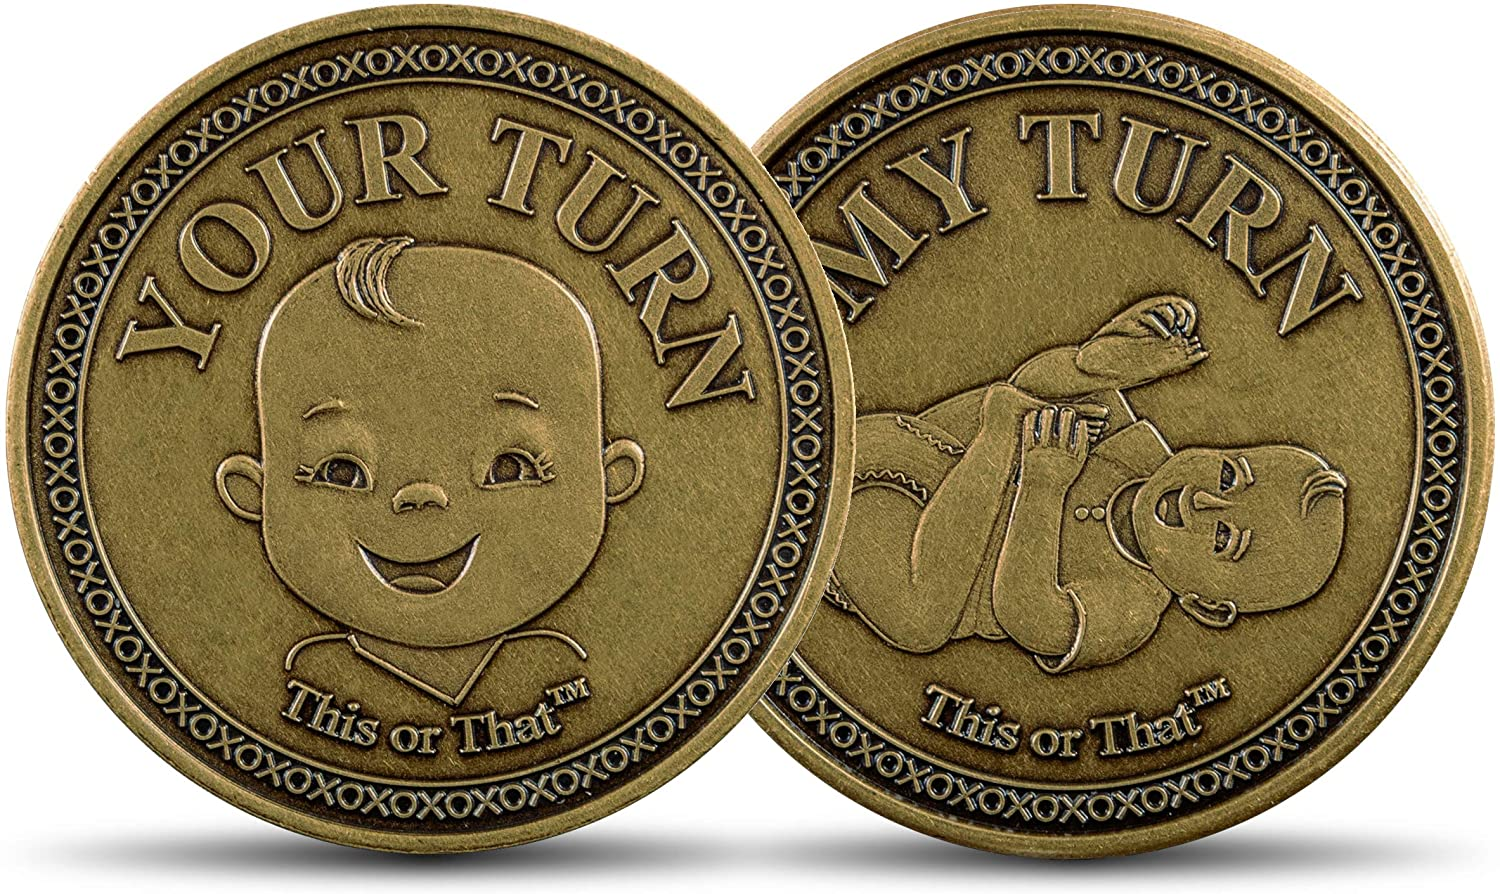 This or That Original Diaper Changing Coin   Flip Coin to See Who Changes Diaper